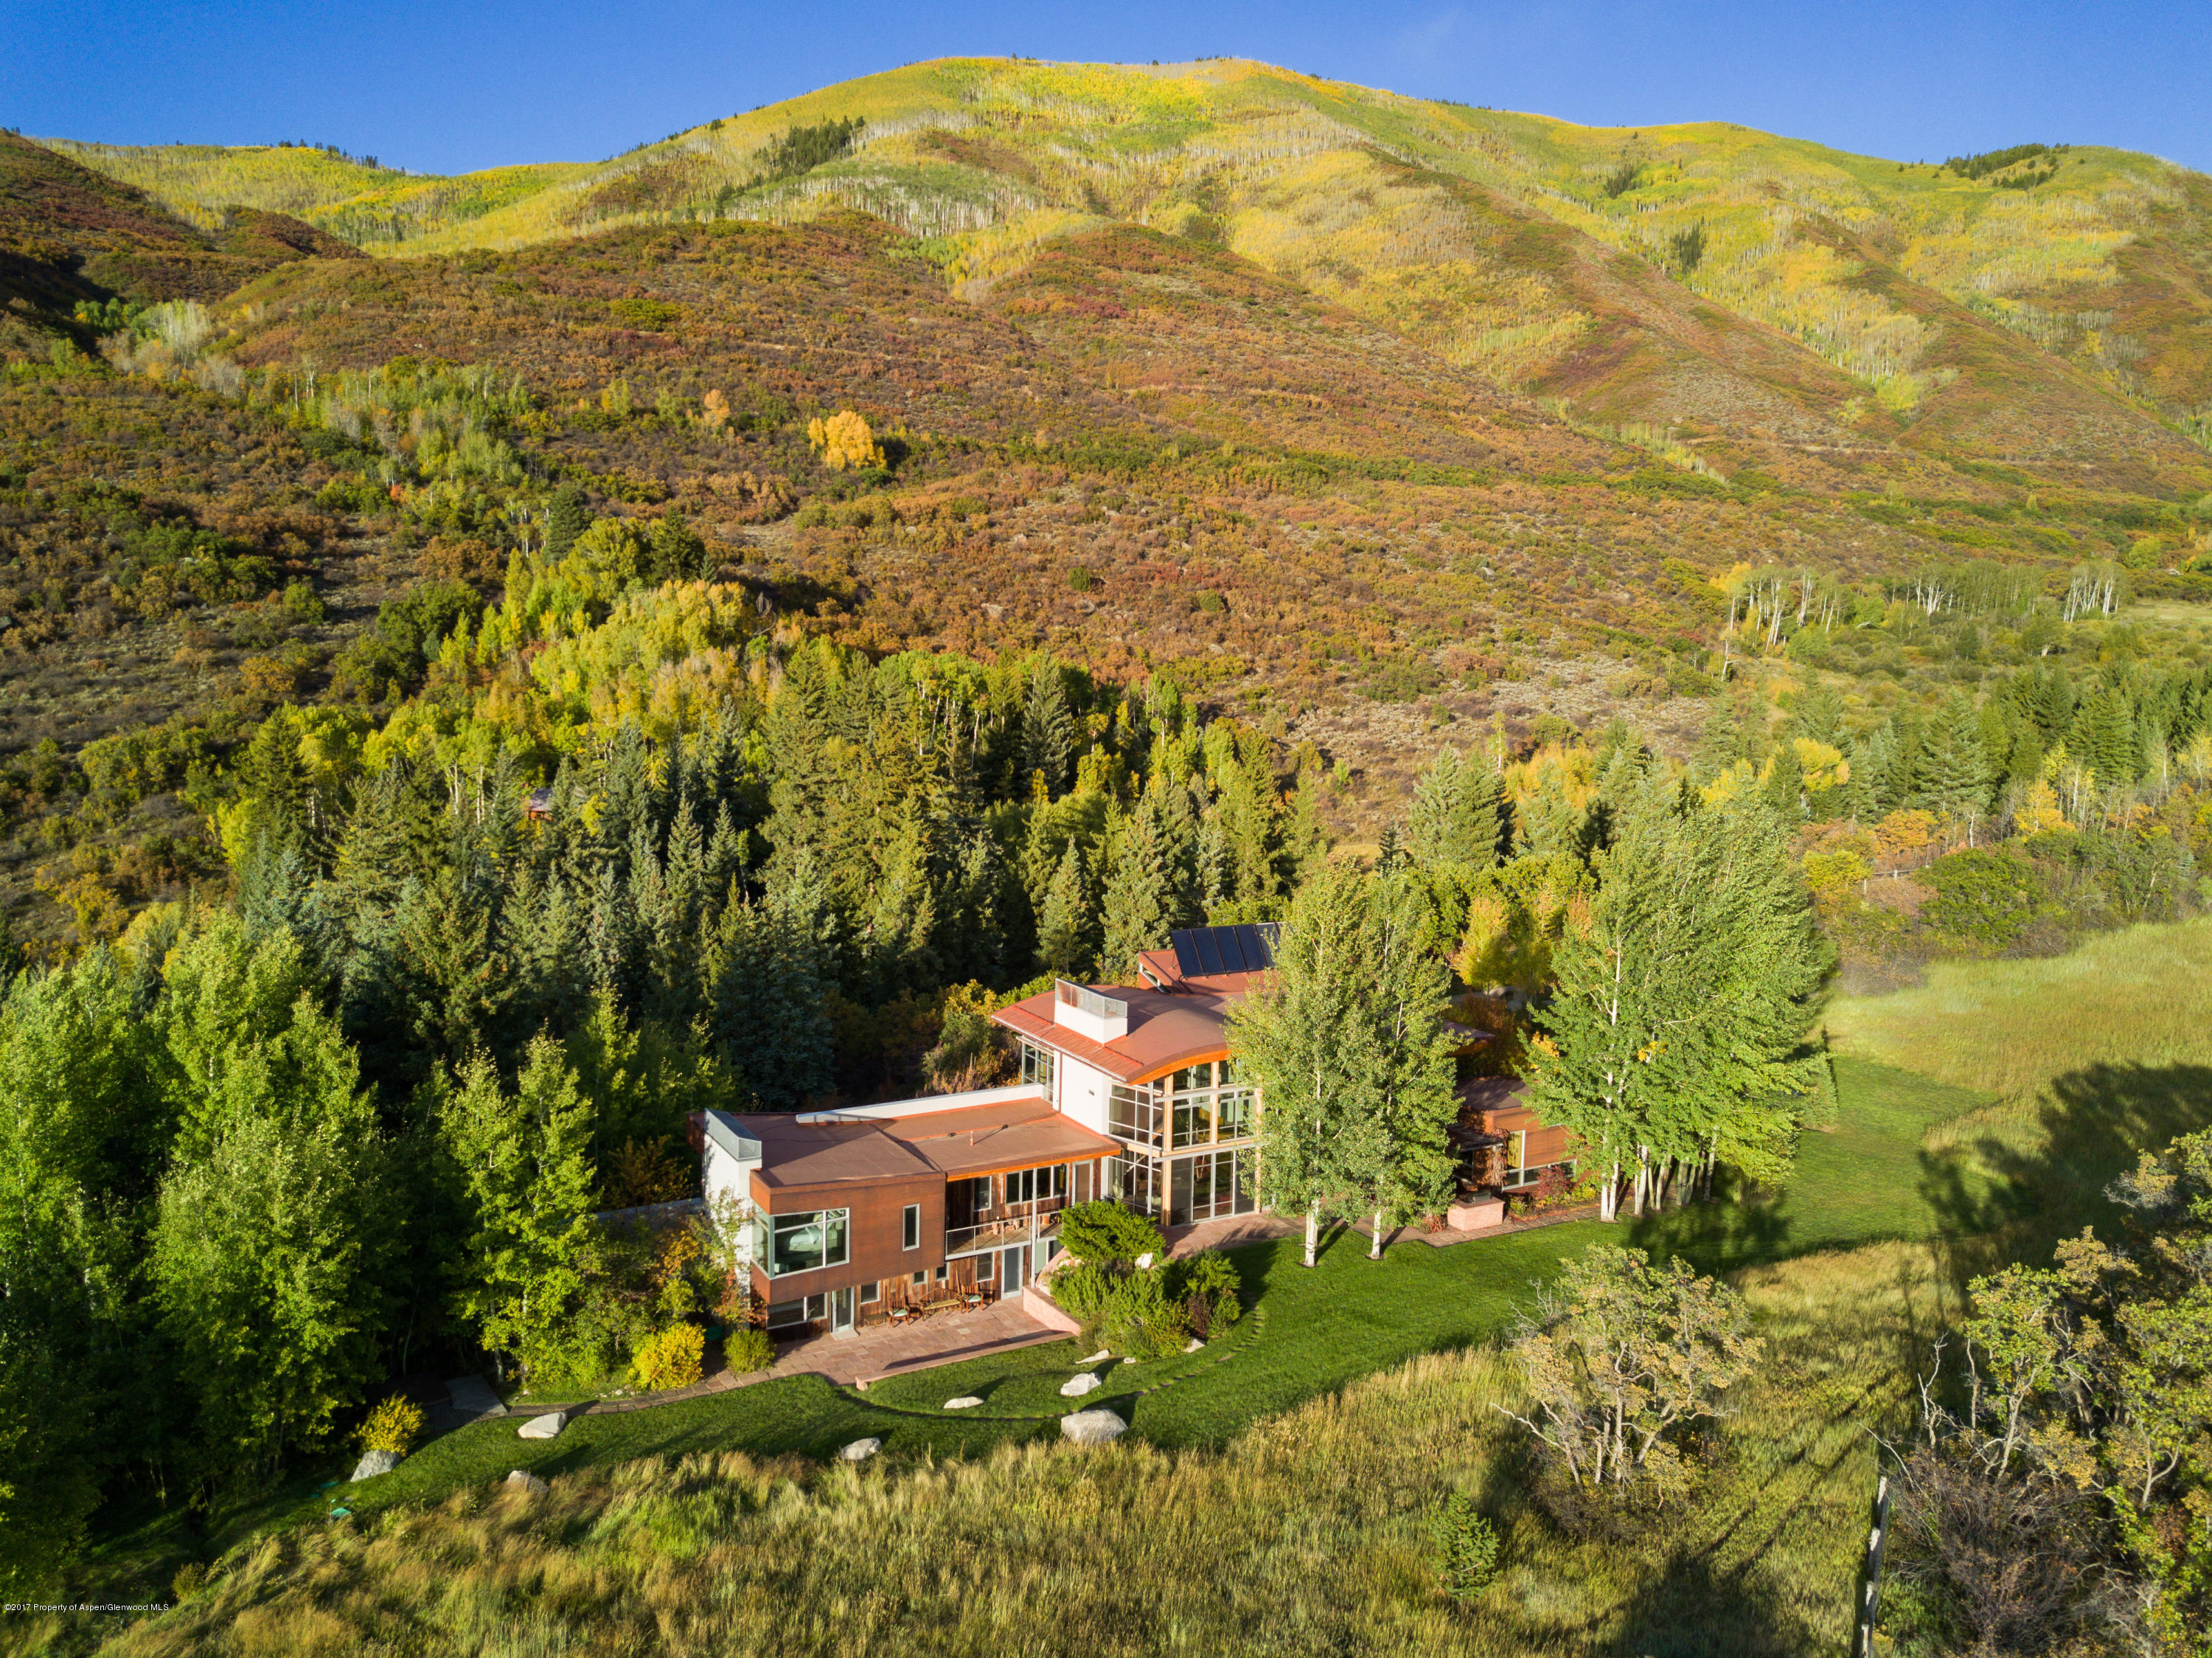 Marvelous Erickson Ranch A Luxury Home For Sale In Aspen Pitkin County Aspen Snowmass Colorado Property Id 156873 Christies International Real Estate Download Free Architecture Designs Ferenbritishbridgeorg